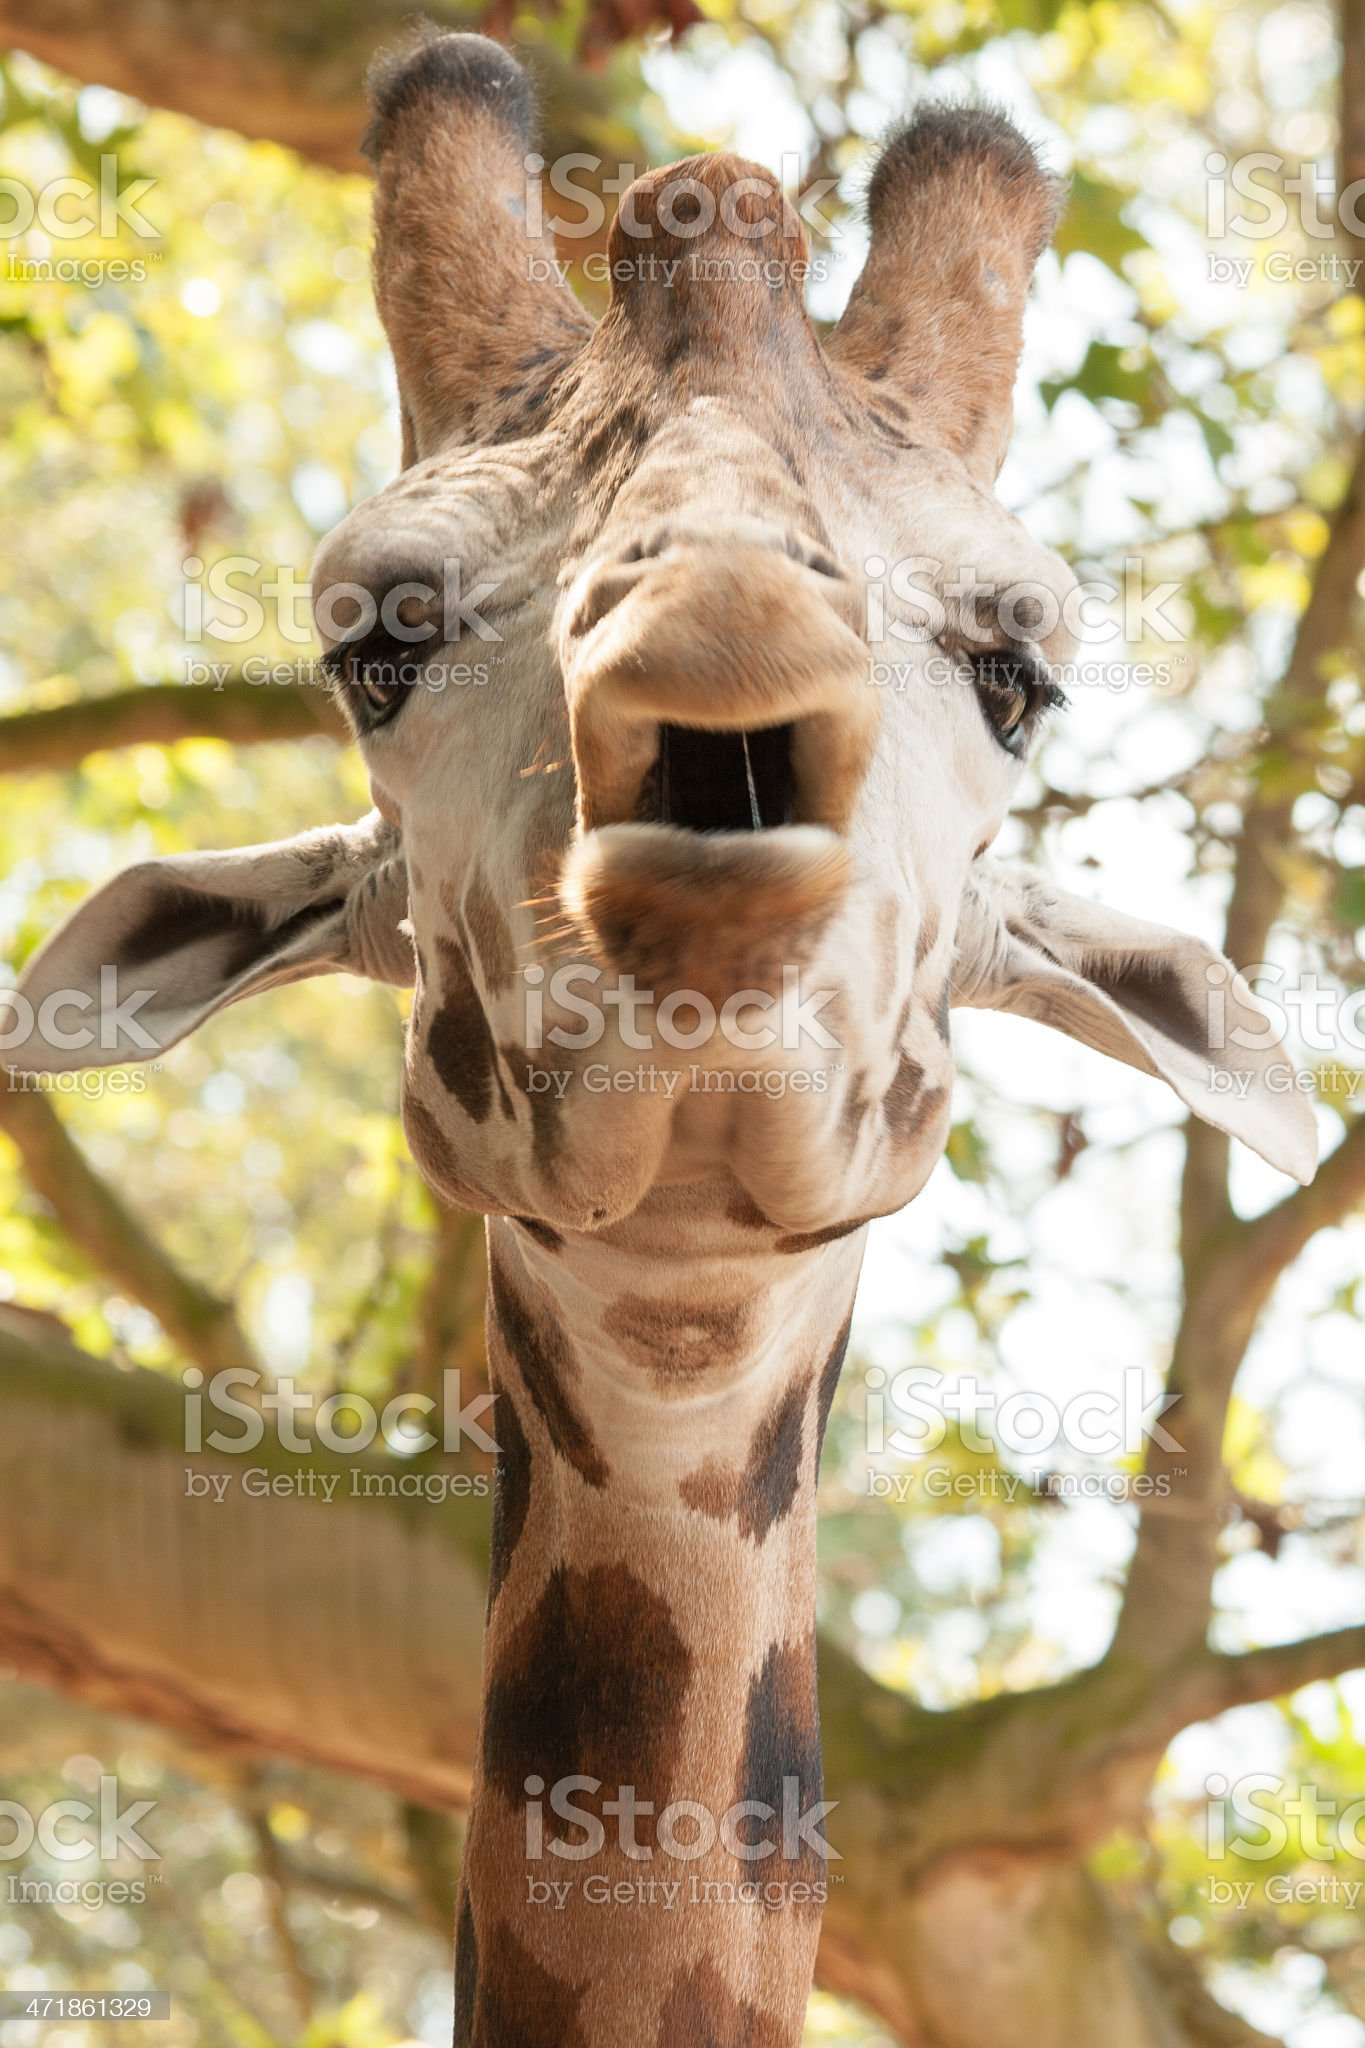 Close-up of a Funny Giraffe in the zoo royalty-free stock photo